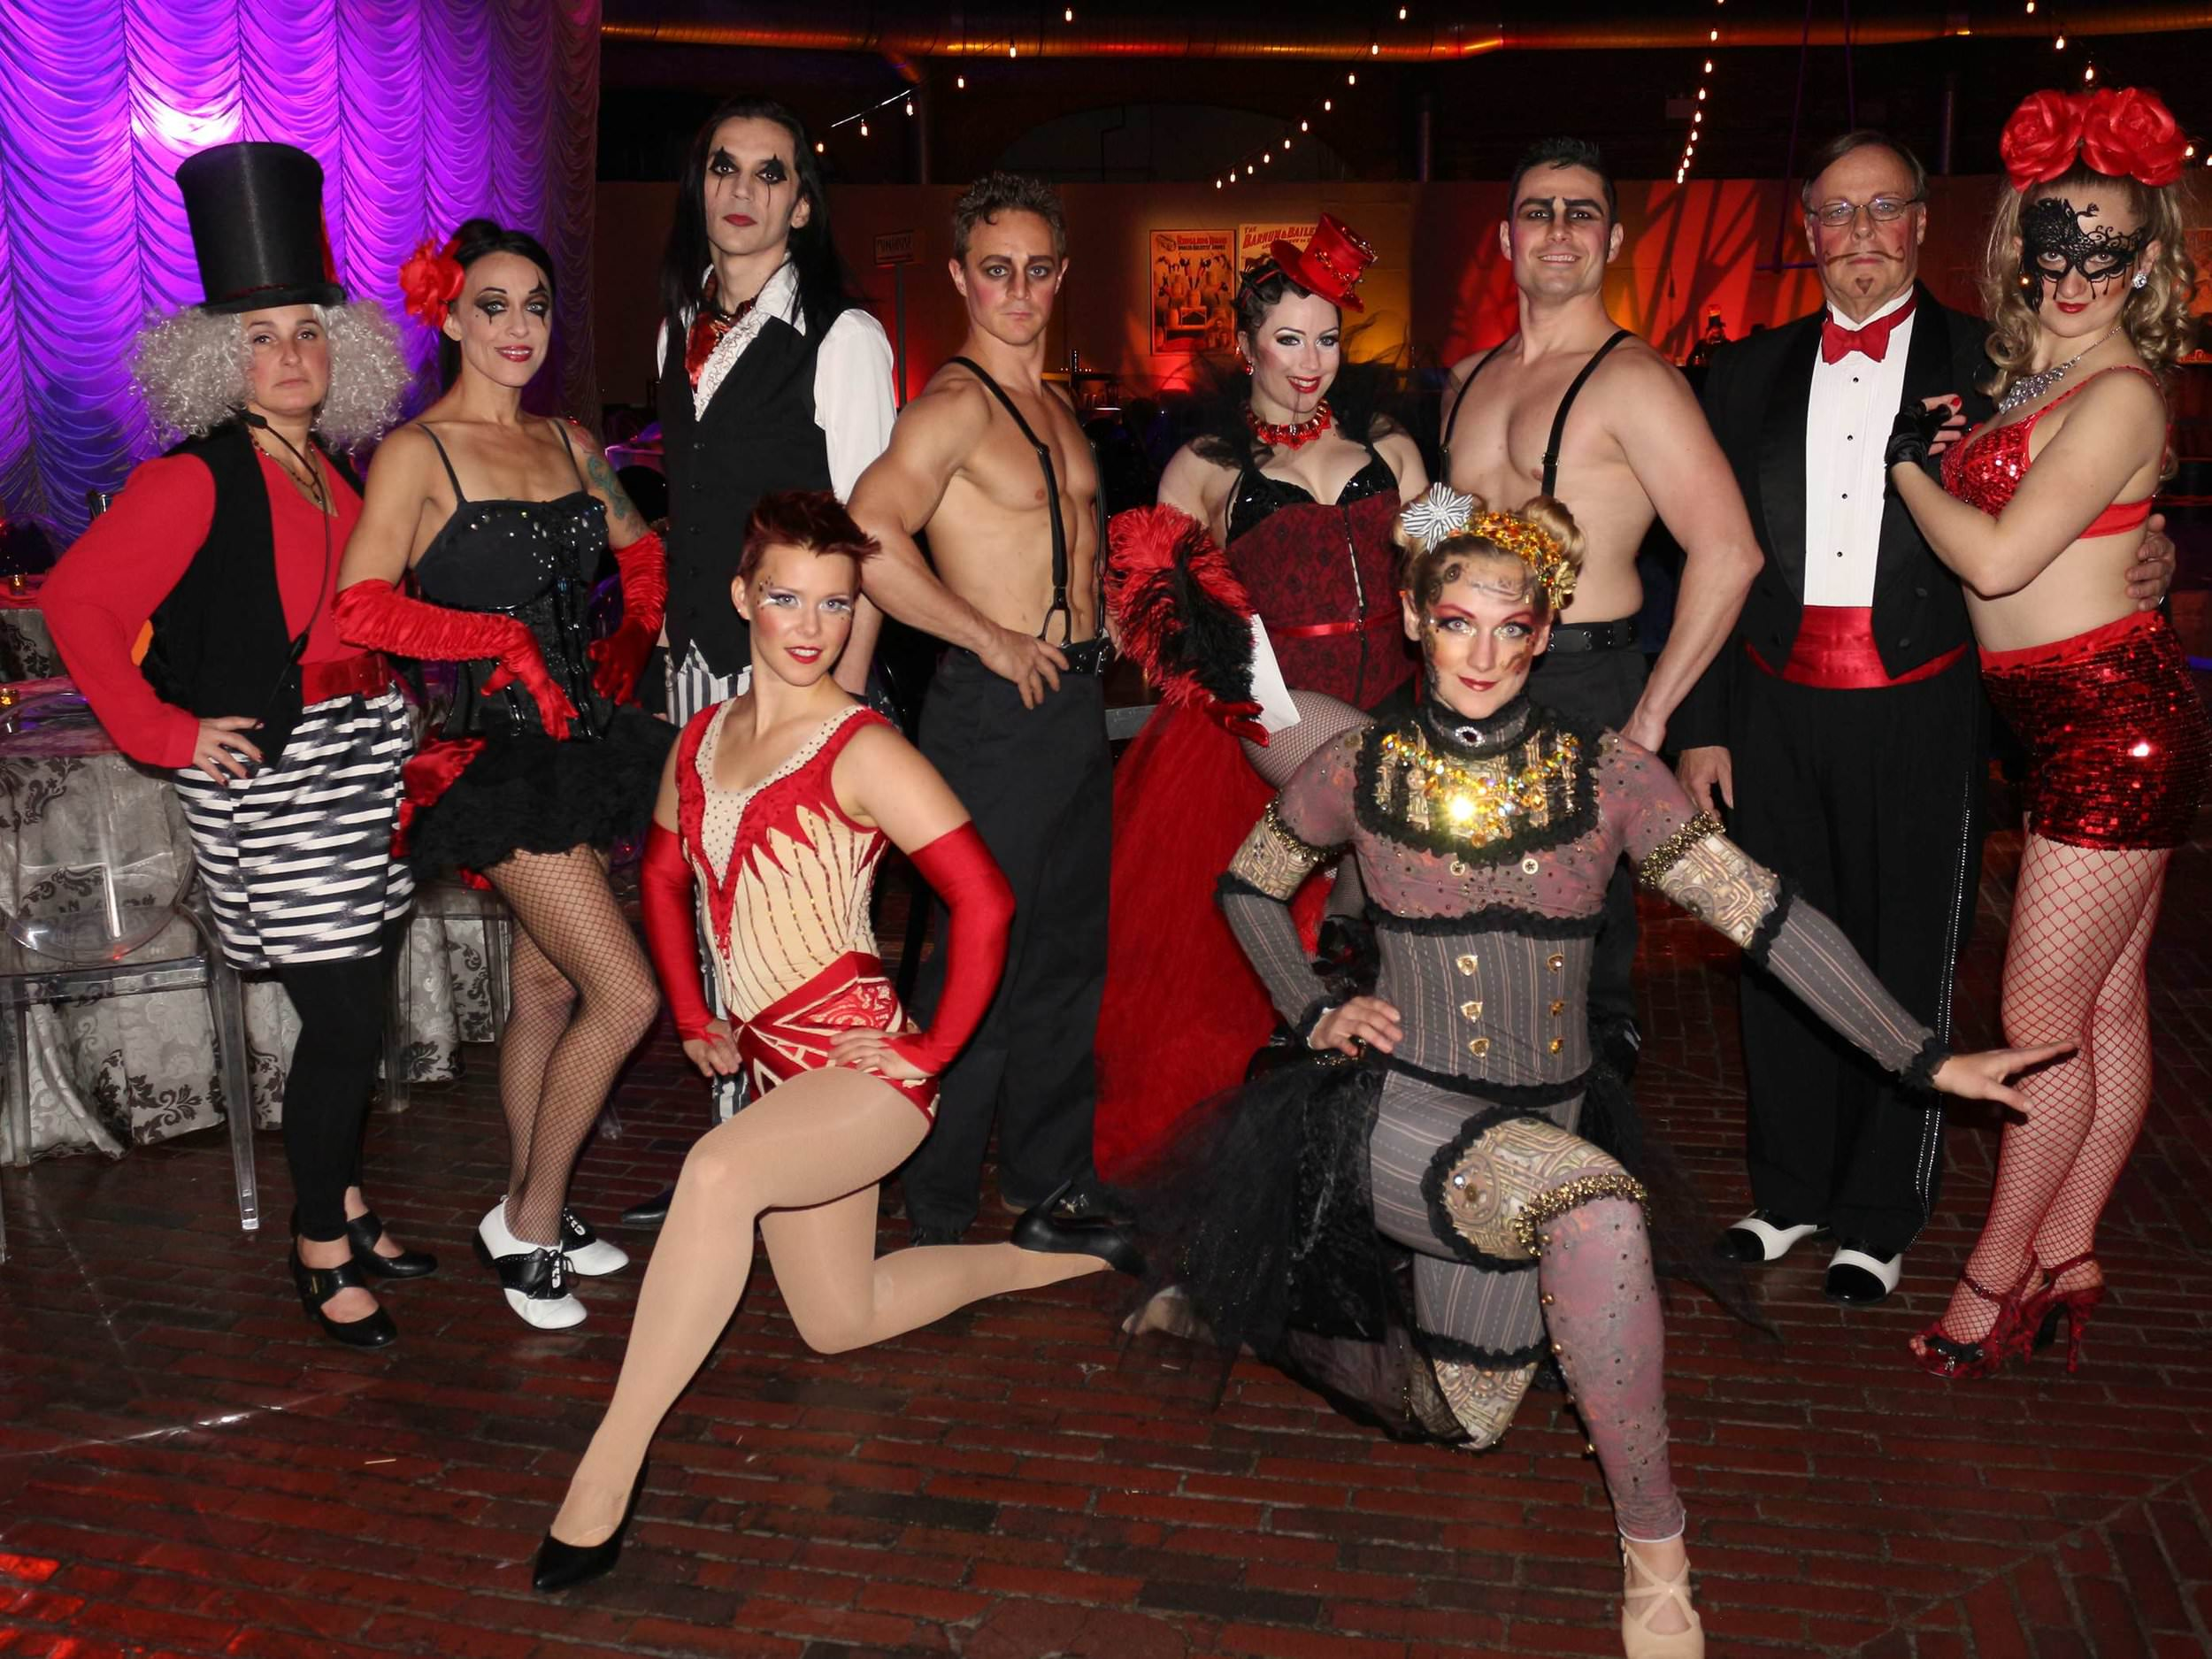 custom-theme-production-corporate-circus-party-in-boston-ma-with-harrington-events.jpg